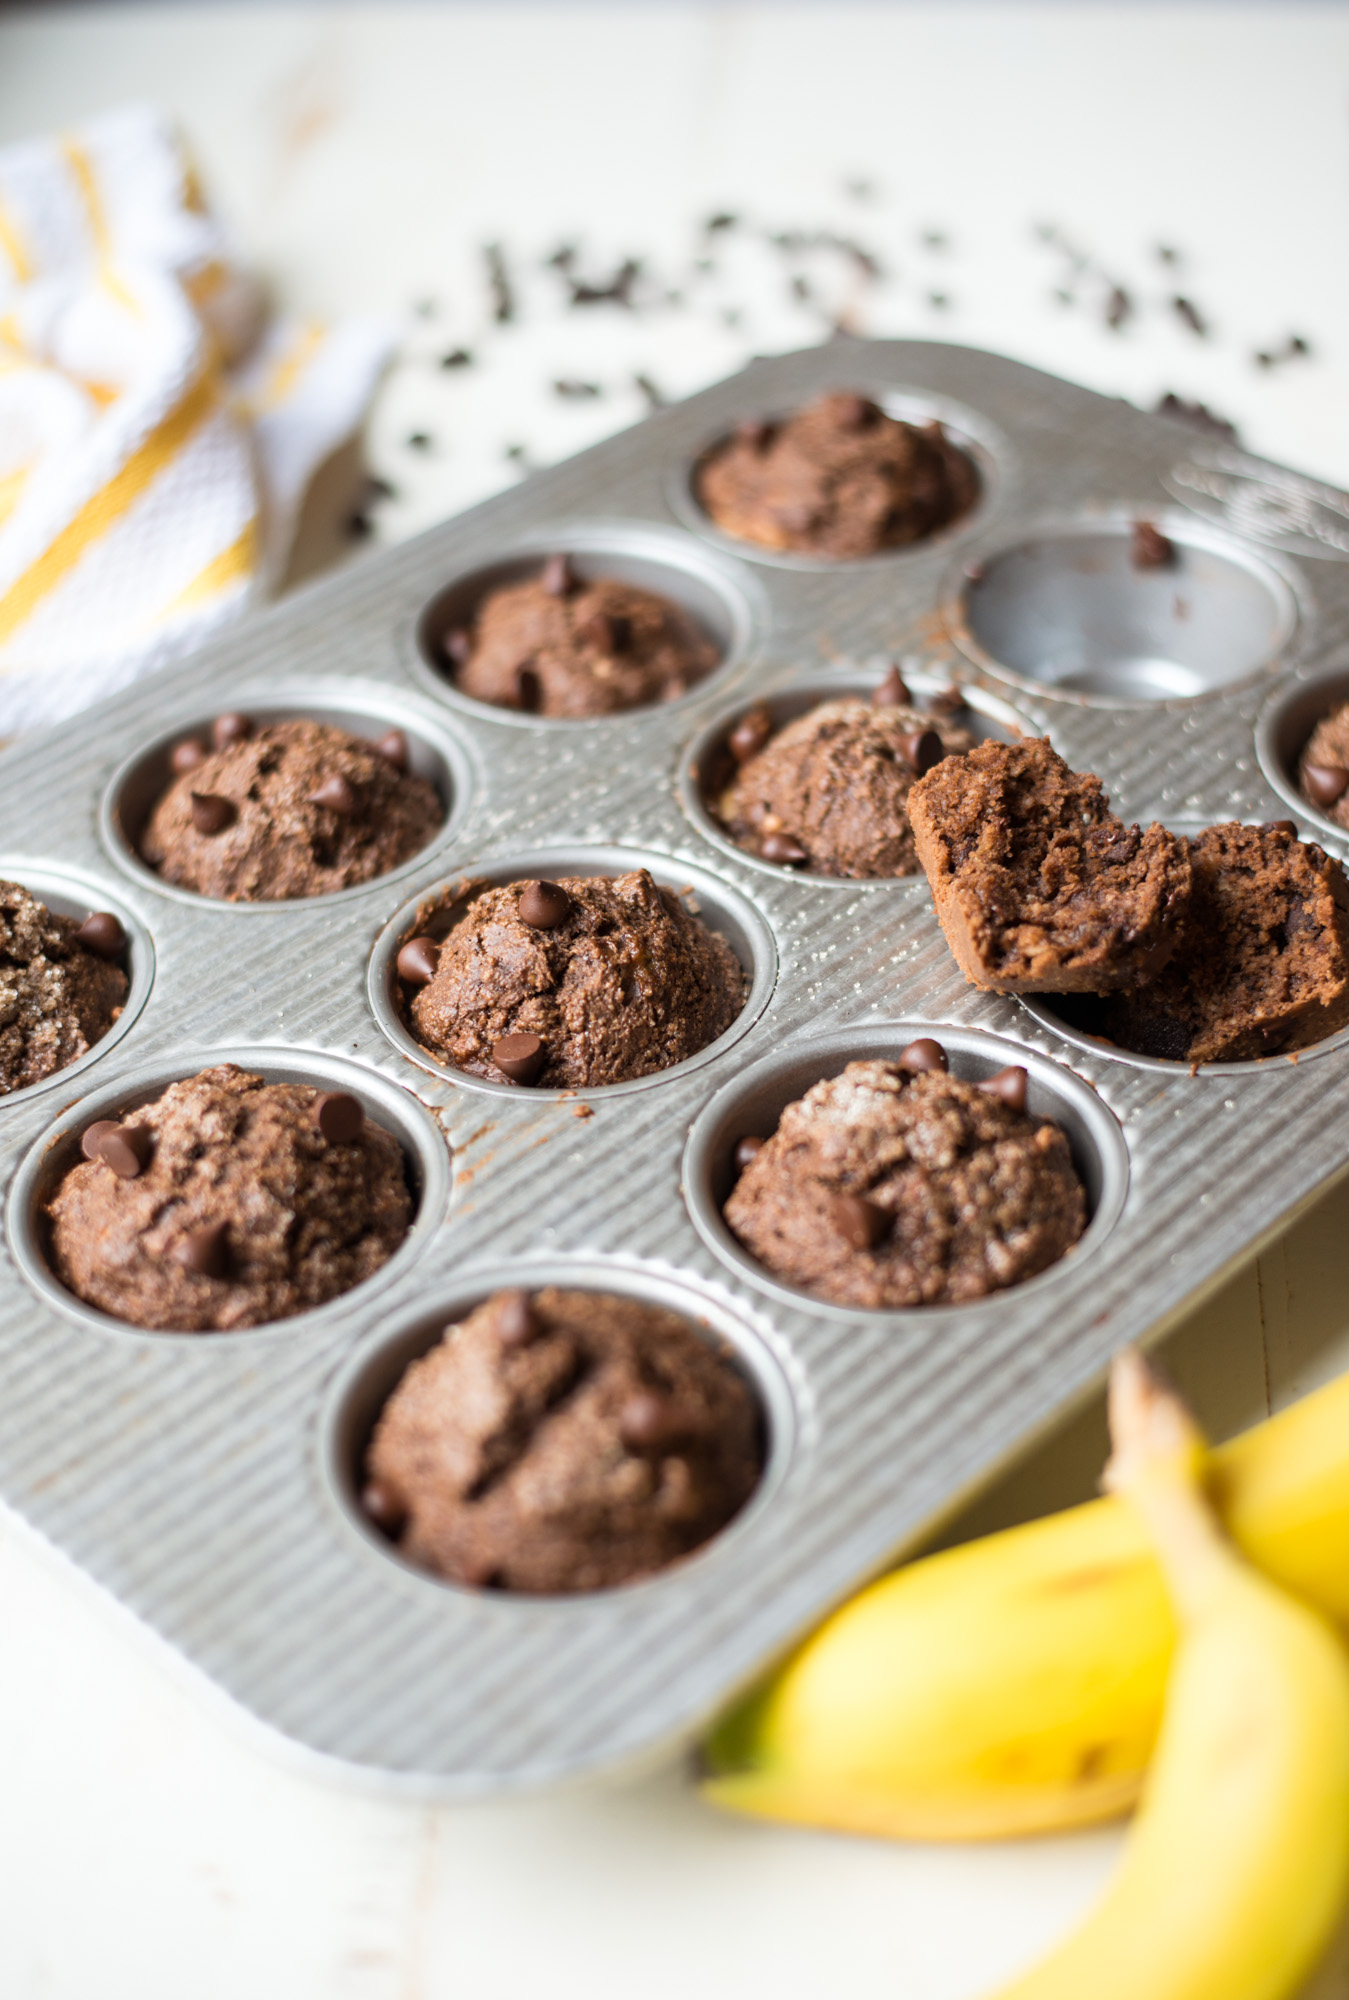 An easy, decadent treat, One-Bowl Double Chocolate Banana Breakfast Muffins are just the thing for mornings on-the-go. Gluten-free, dairy-free, naturally sweetened and totally delicious!